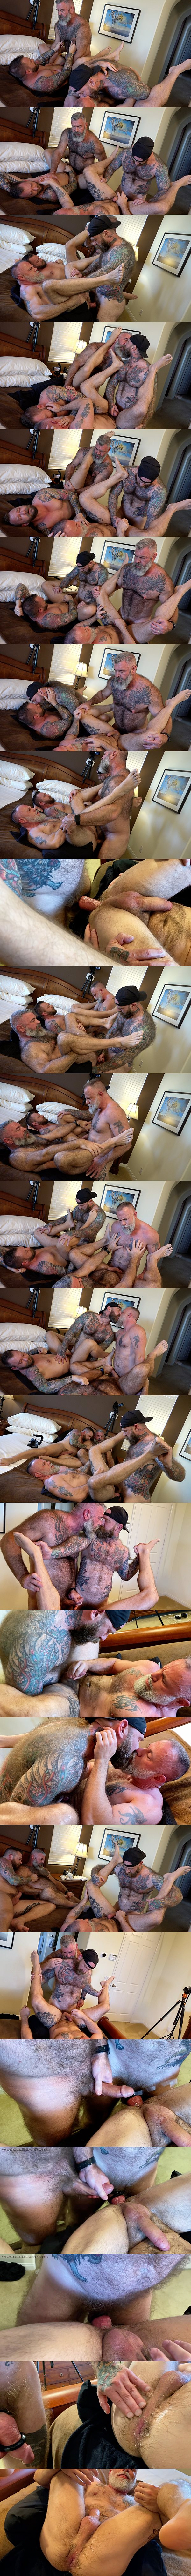 Musclebearporn - Liam Griffin, Liam Angell and Will Angell take turns getting fucked by Jack Dixon before Jack fucks the cum out of Liam Angell and creampies him 02